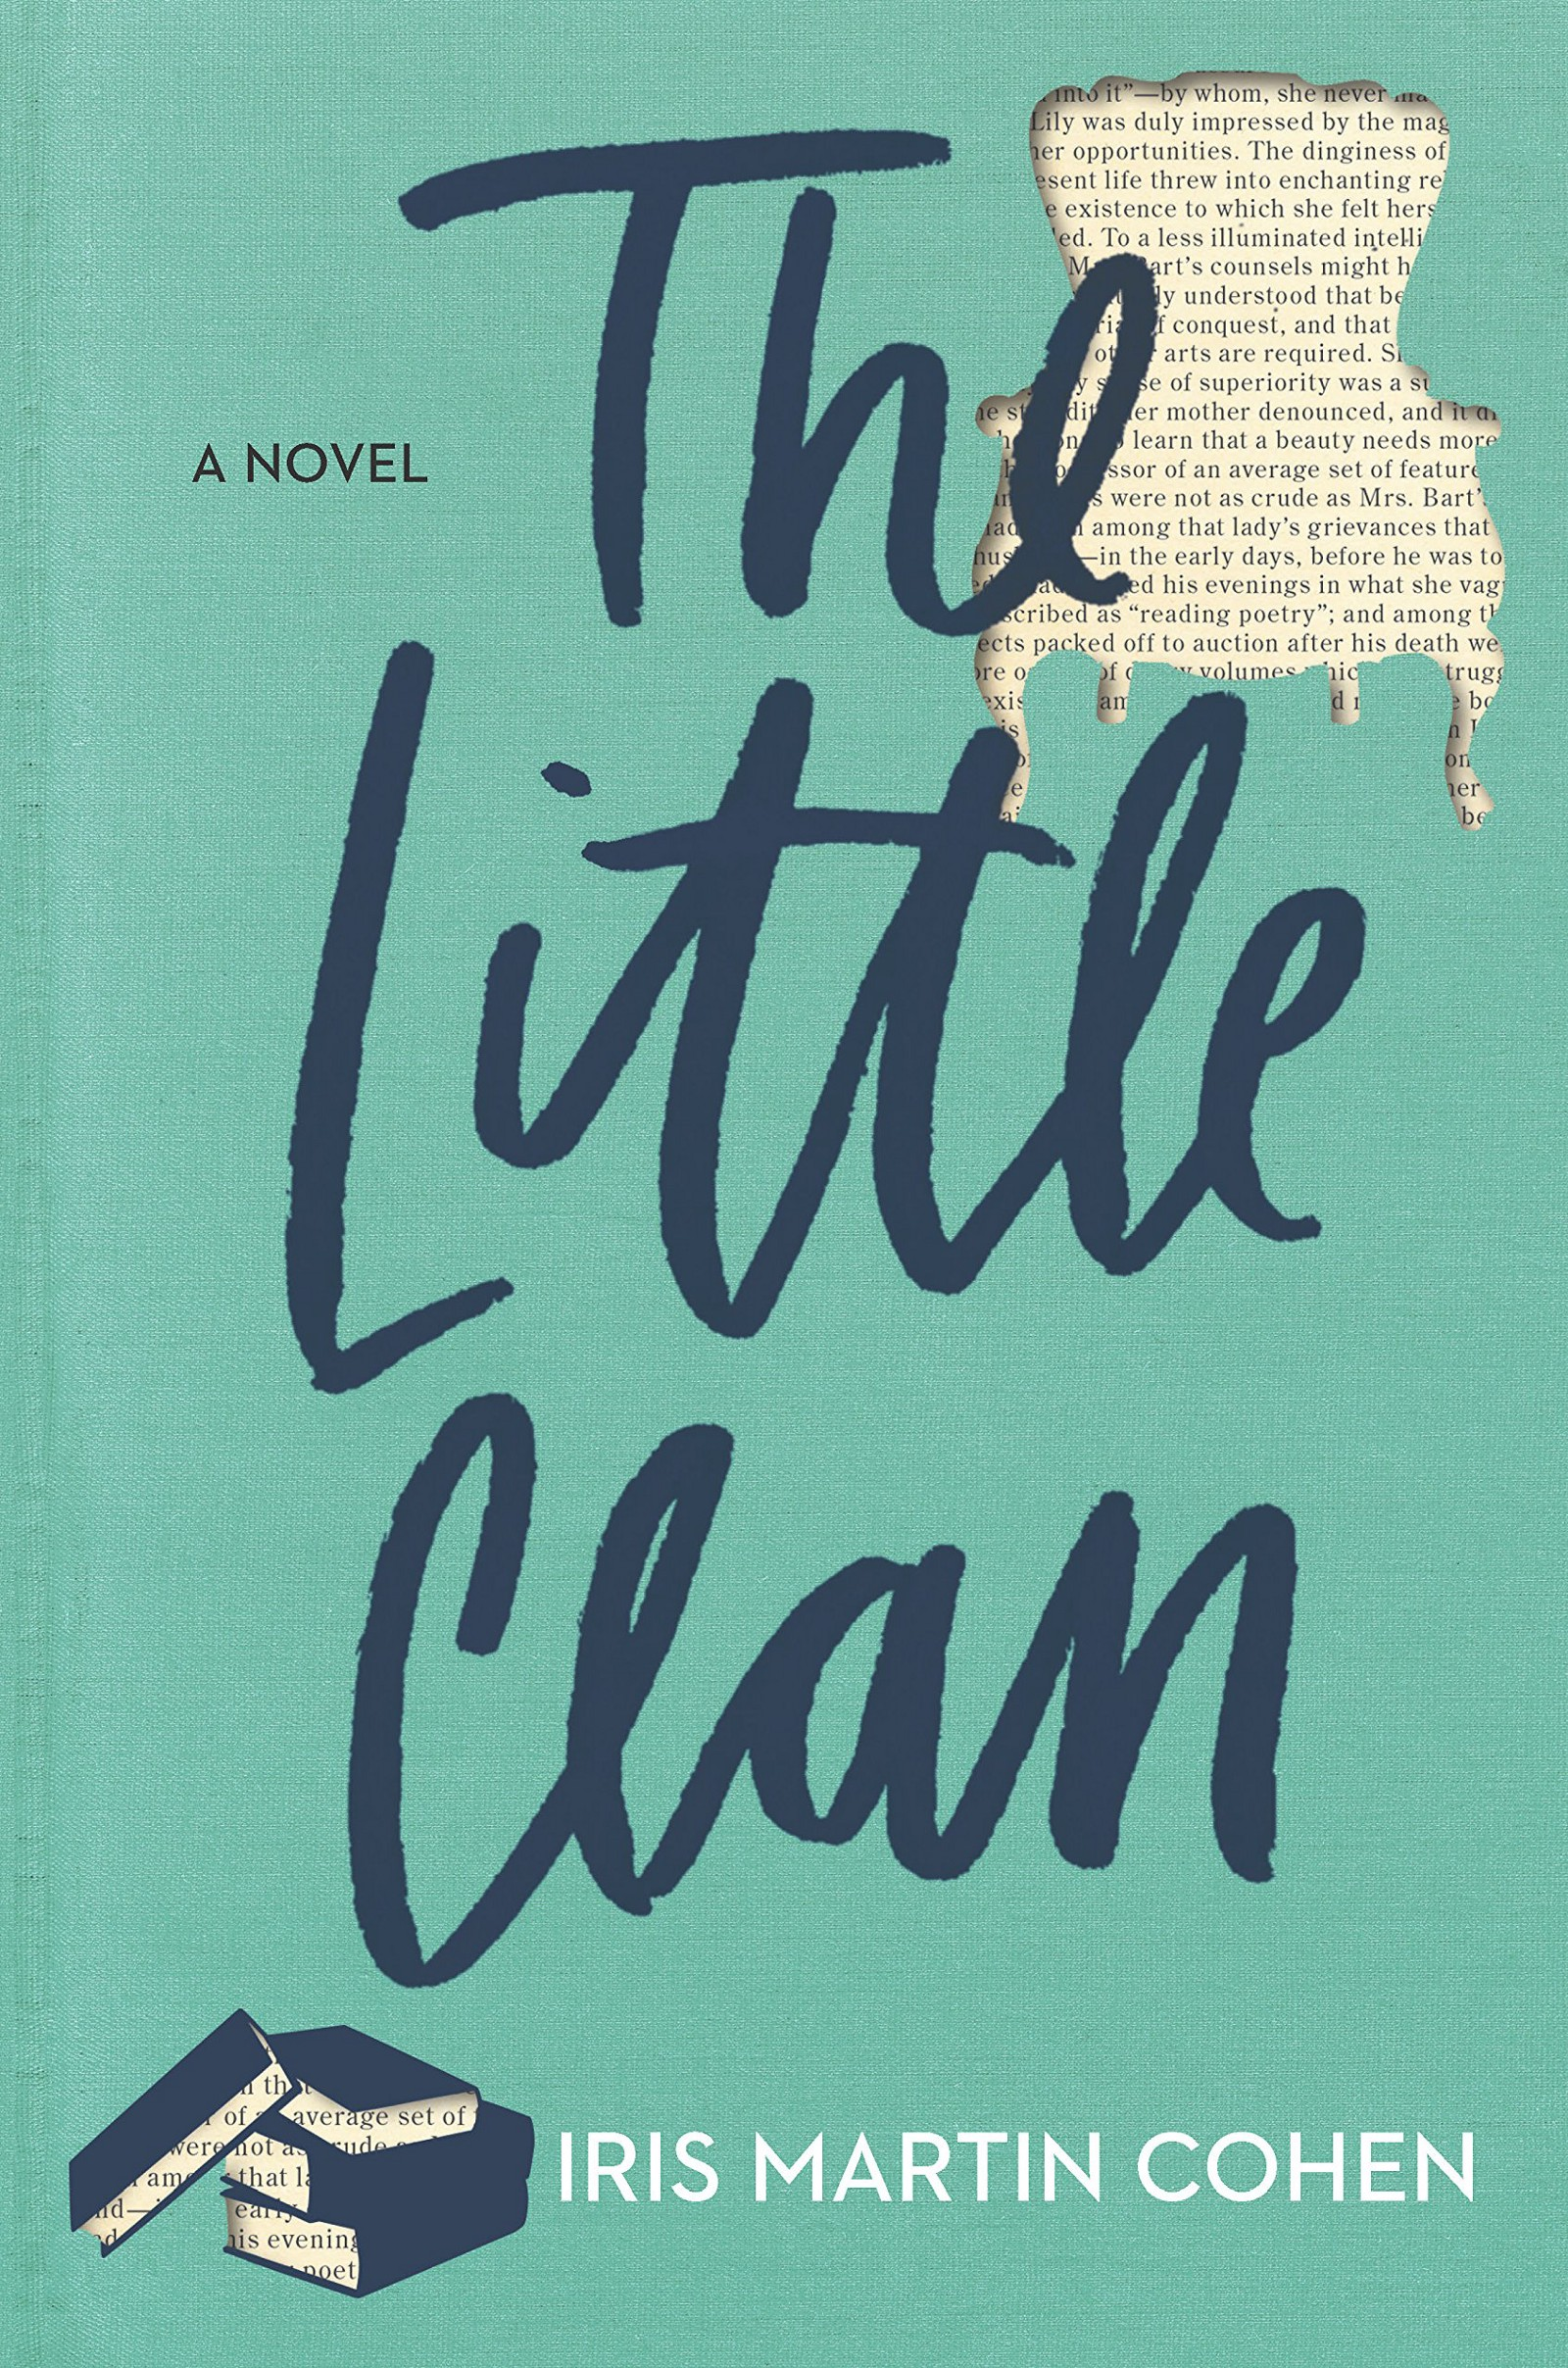 Book cover image for The Little Clan, a novel